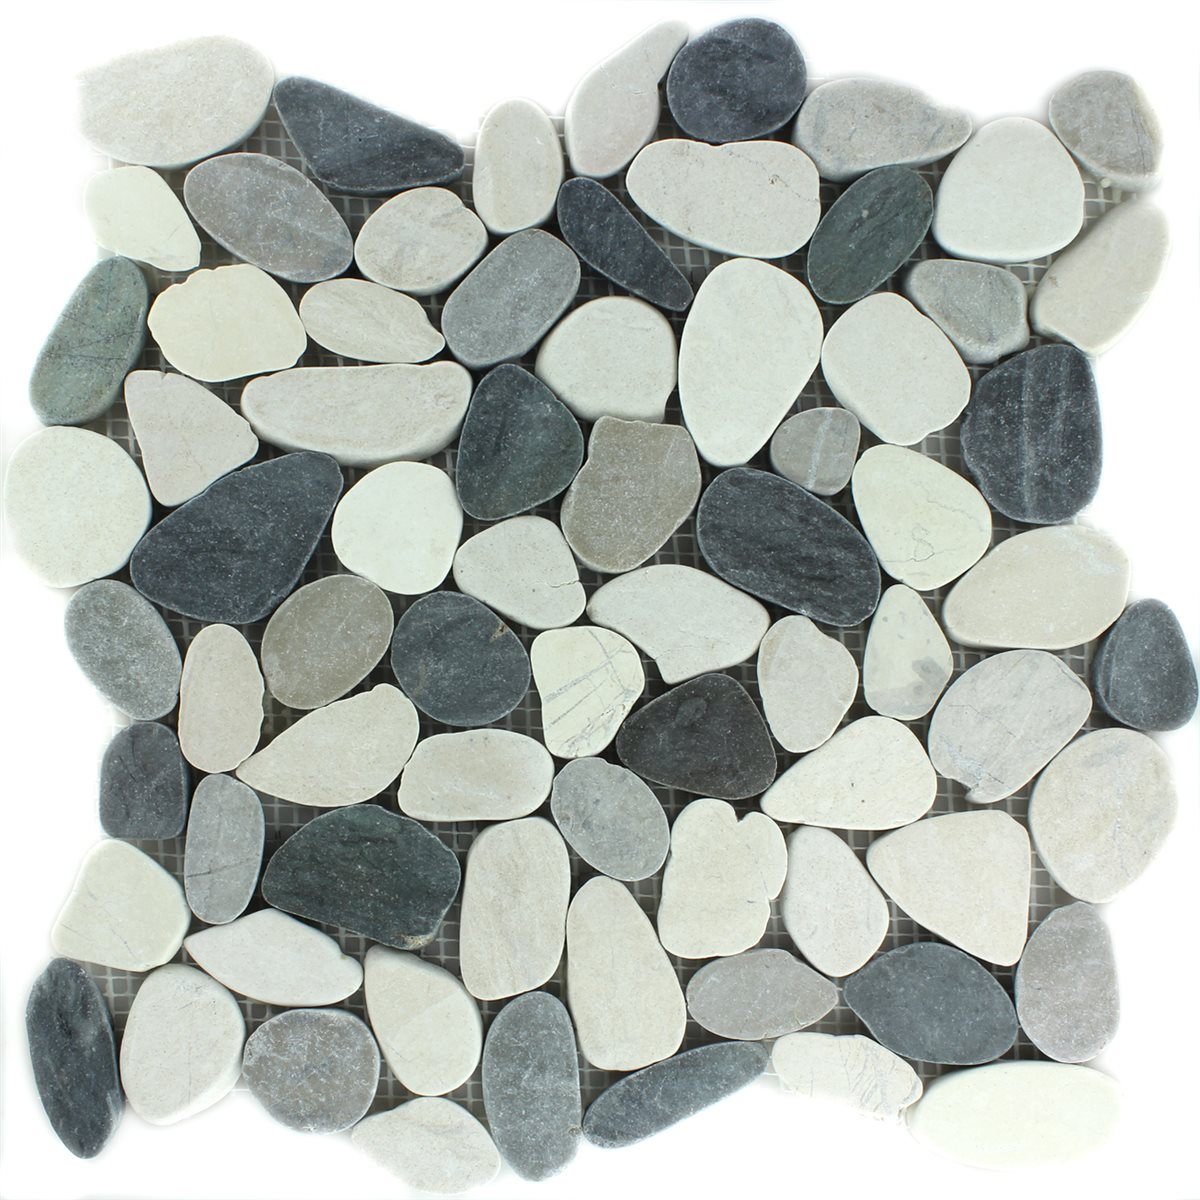 pebble stone mosaic tiles sawn creme anthracite lz69250m. Black Bedroom Furniture Sets. Home Design Ideas